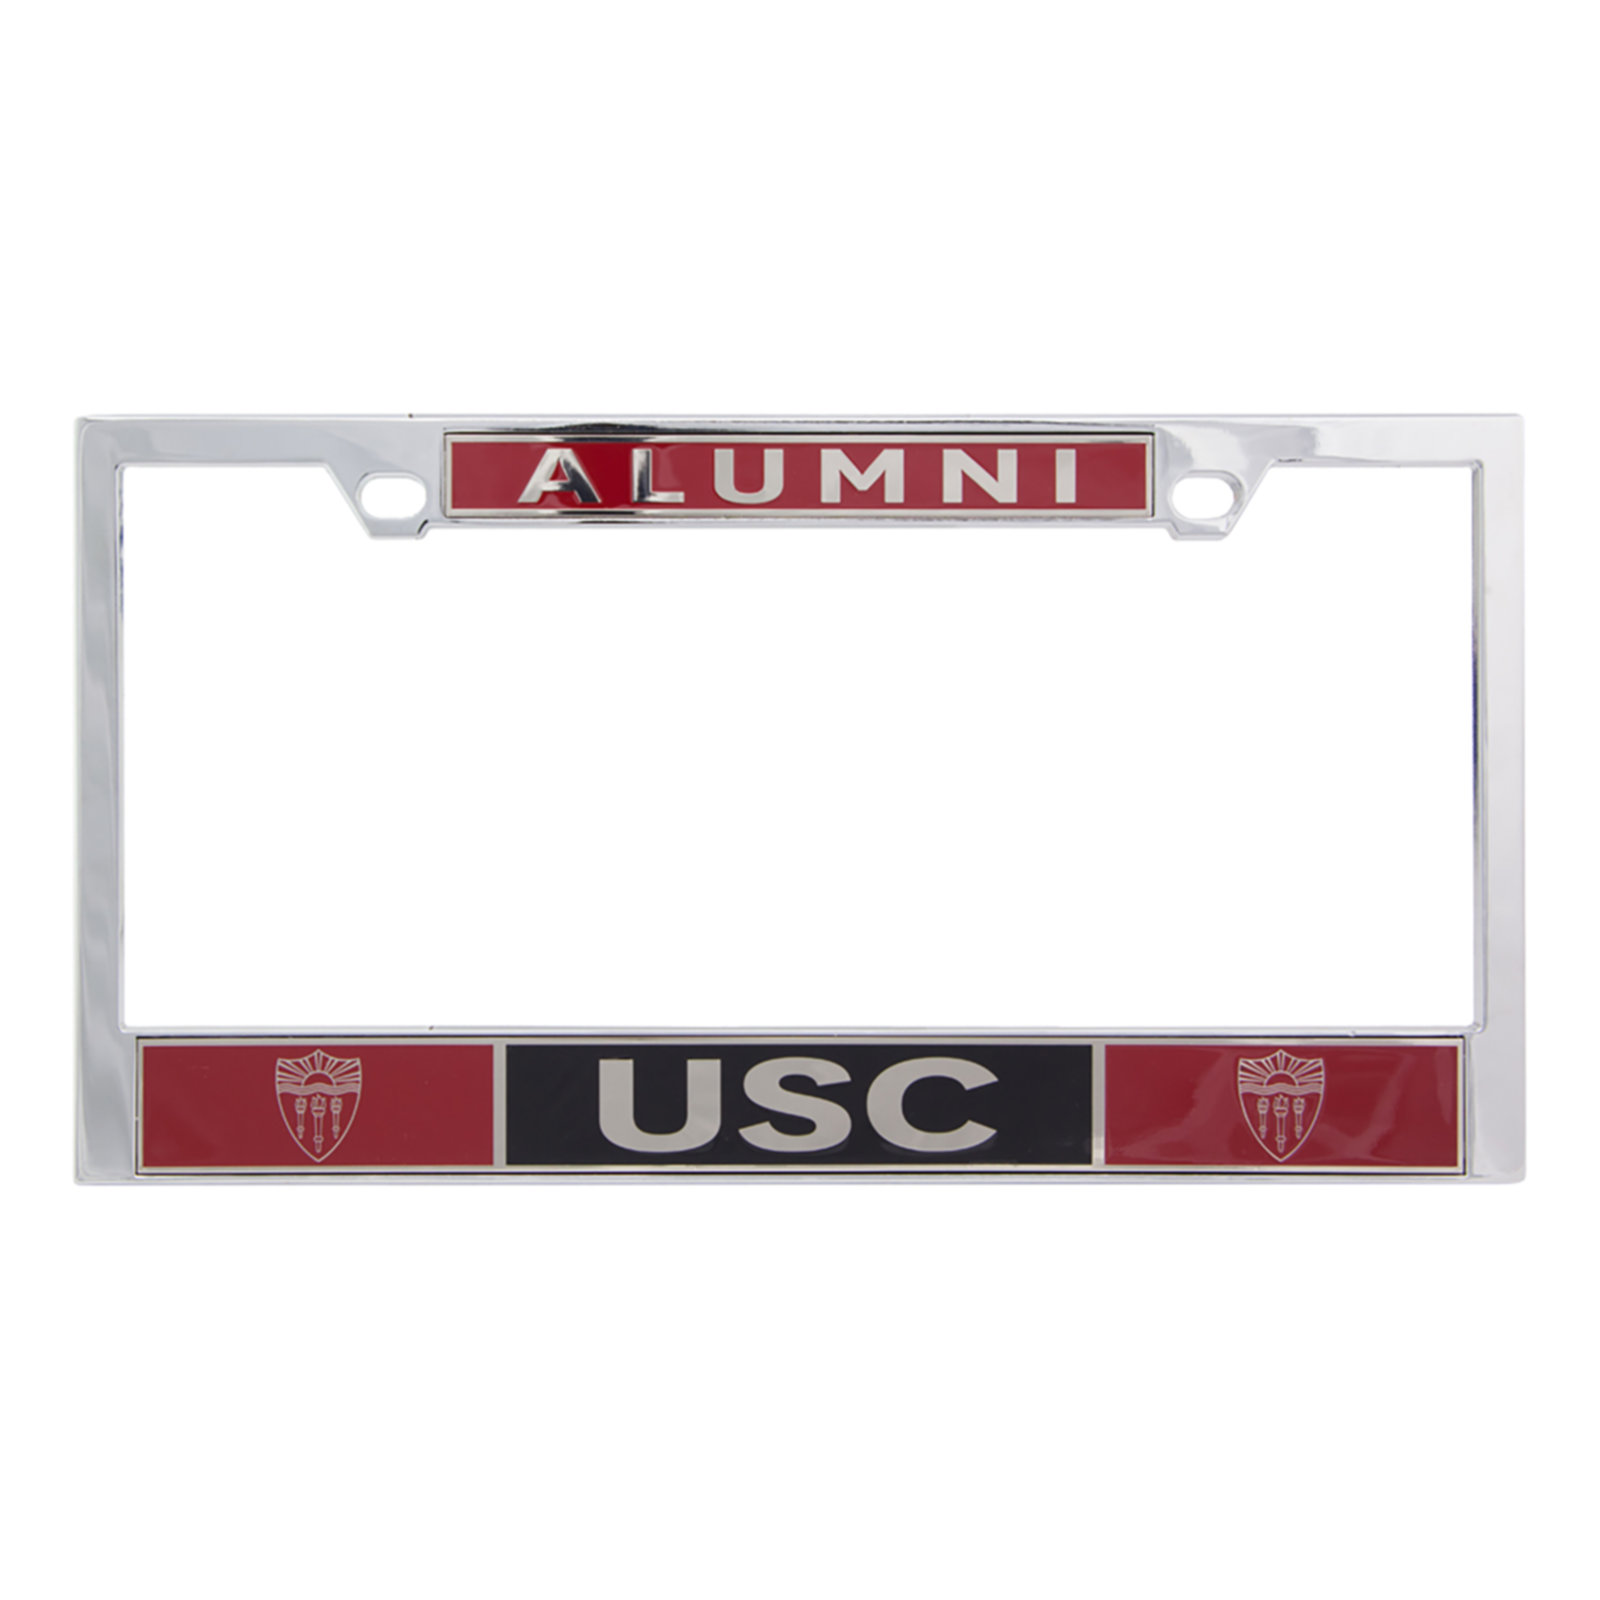 usc shield alumni license plate frame heavy chrome